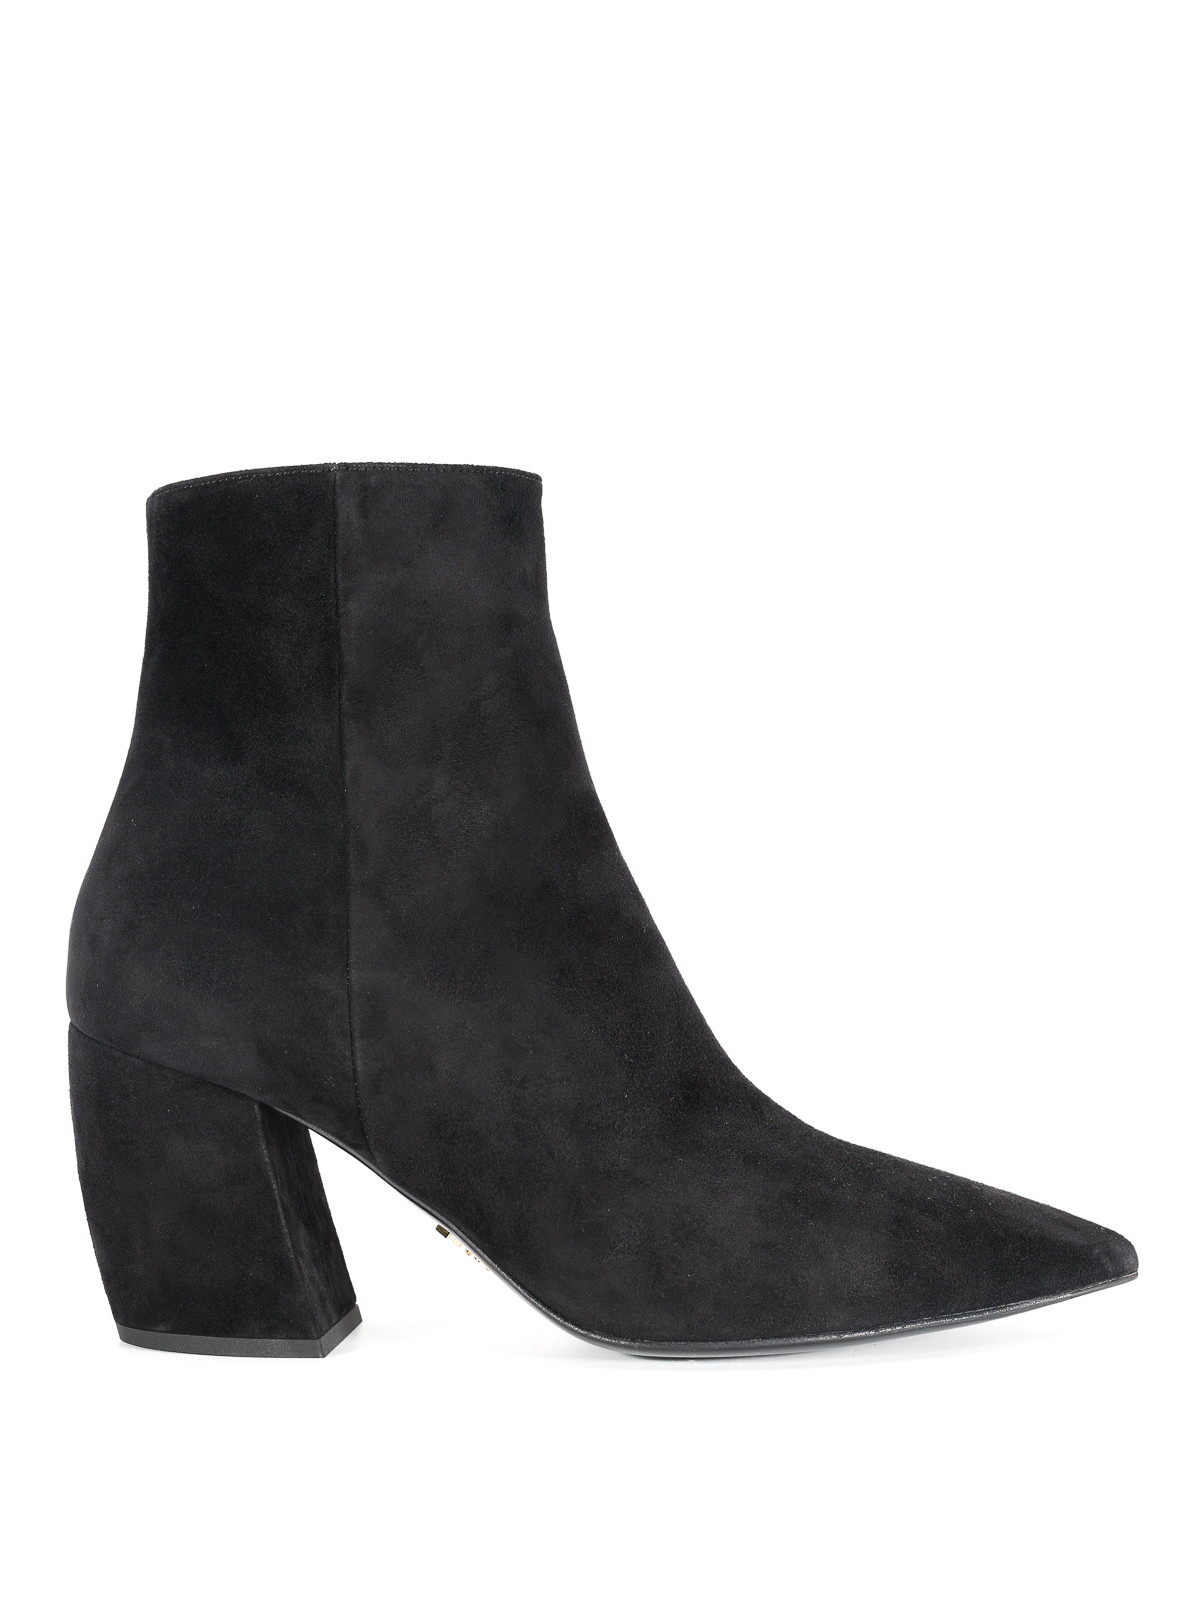 Prada - Suede tapered ankle boots